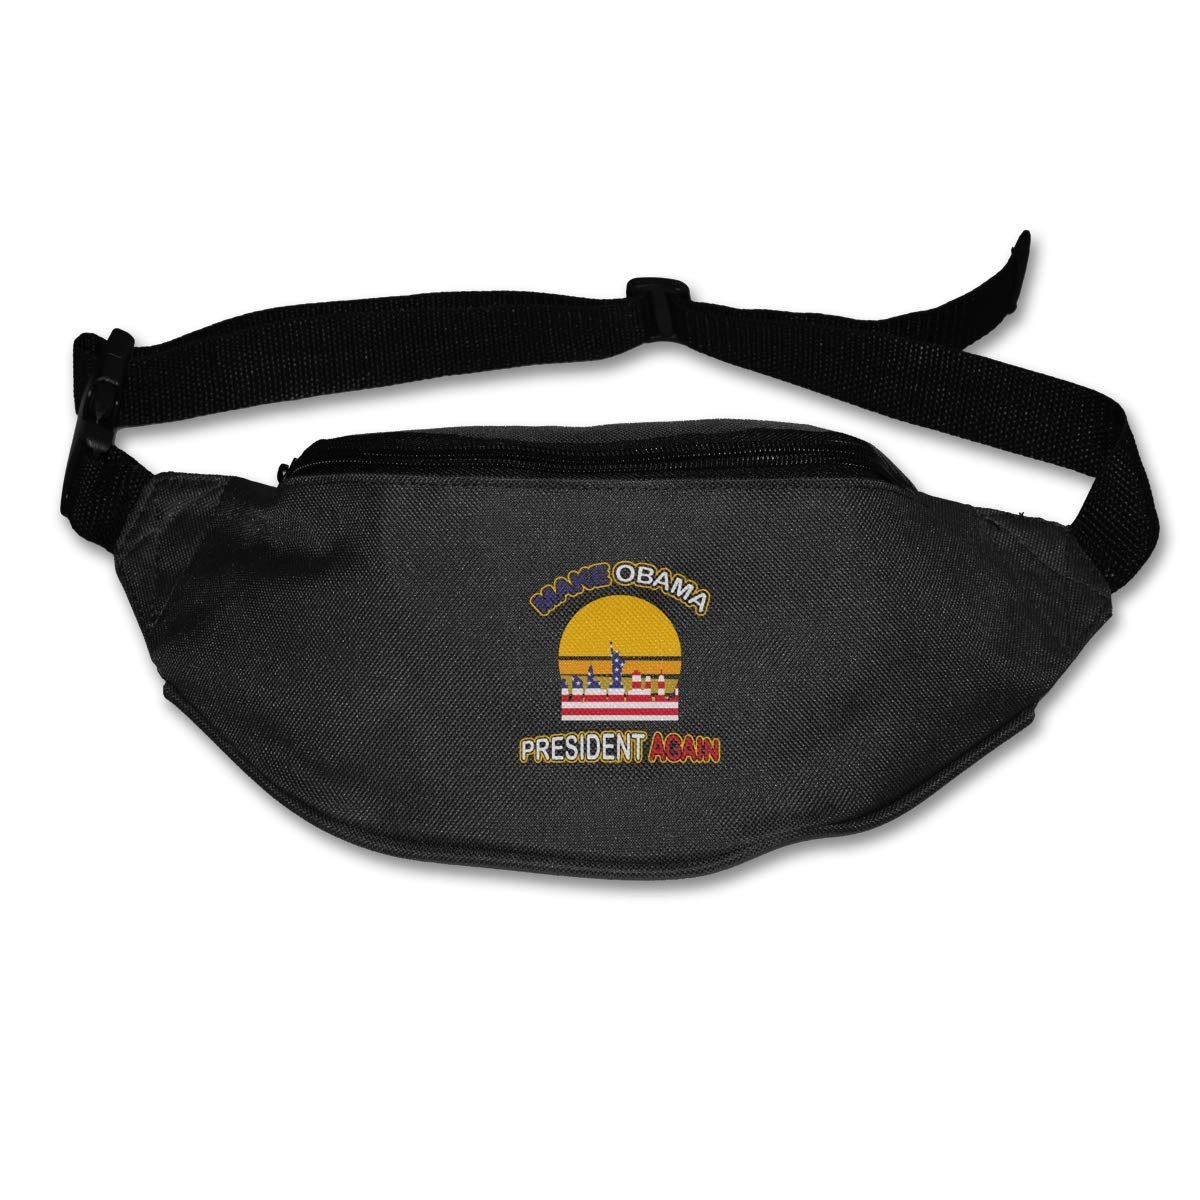 Make Obama President Again Sport Waist Pack Fanny Pack Adjustable For Travel